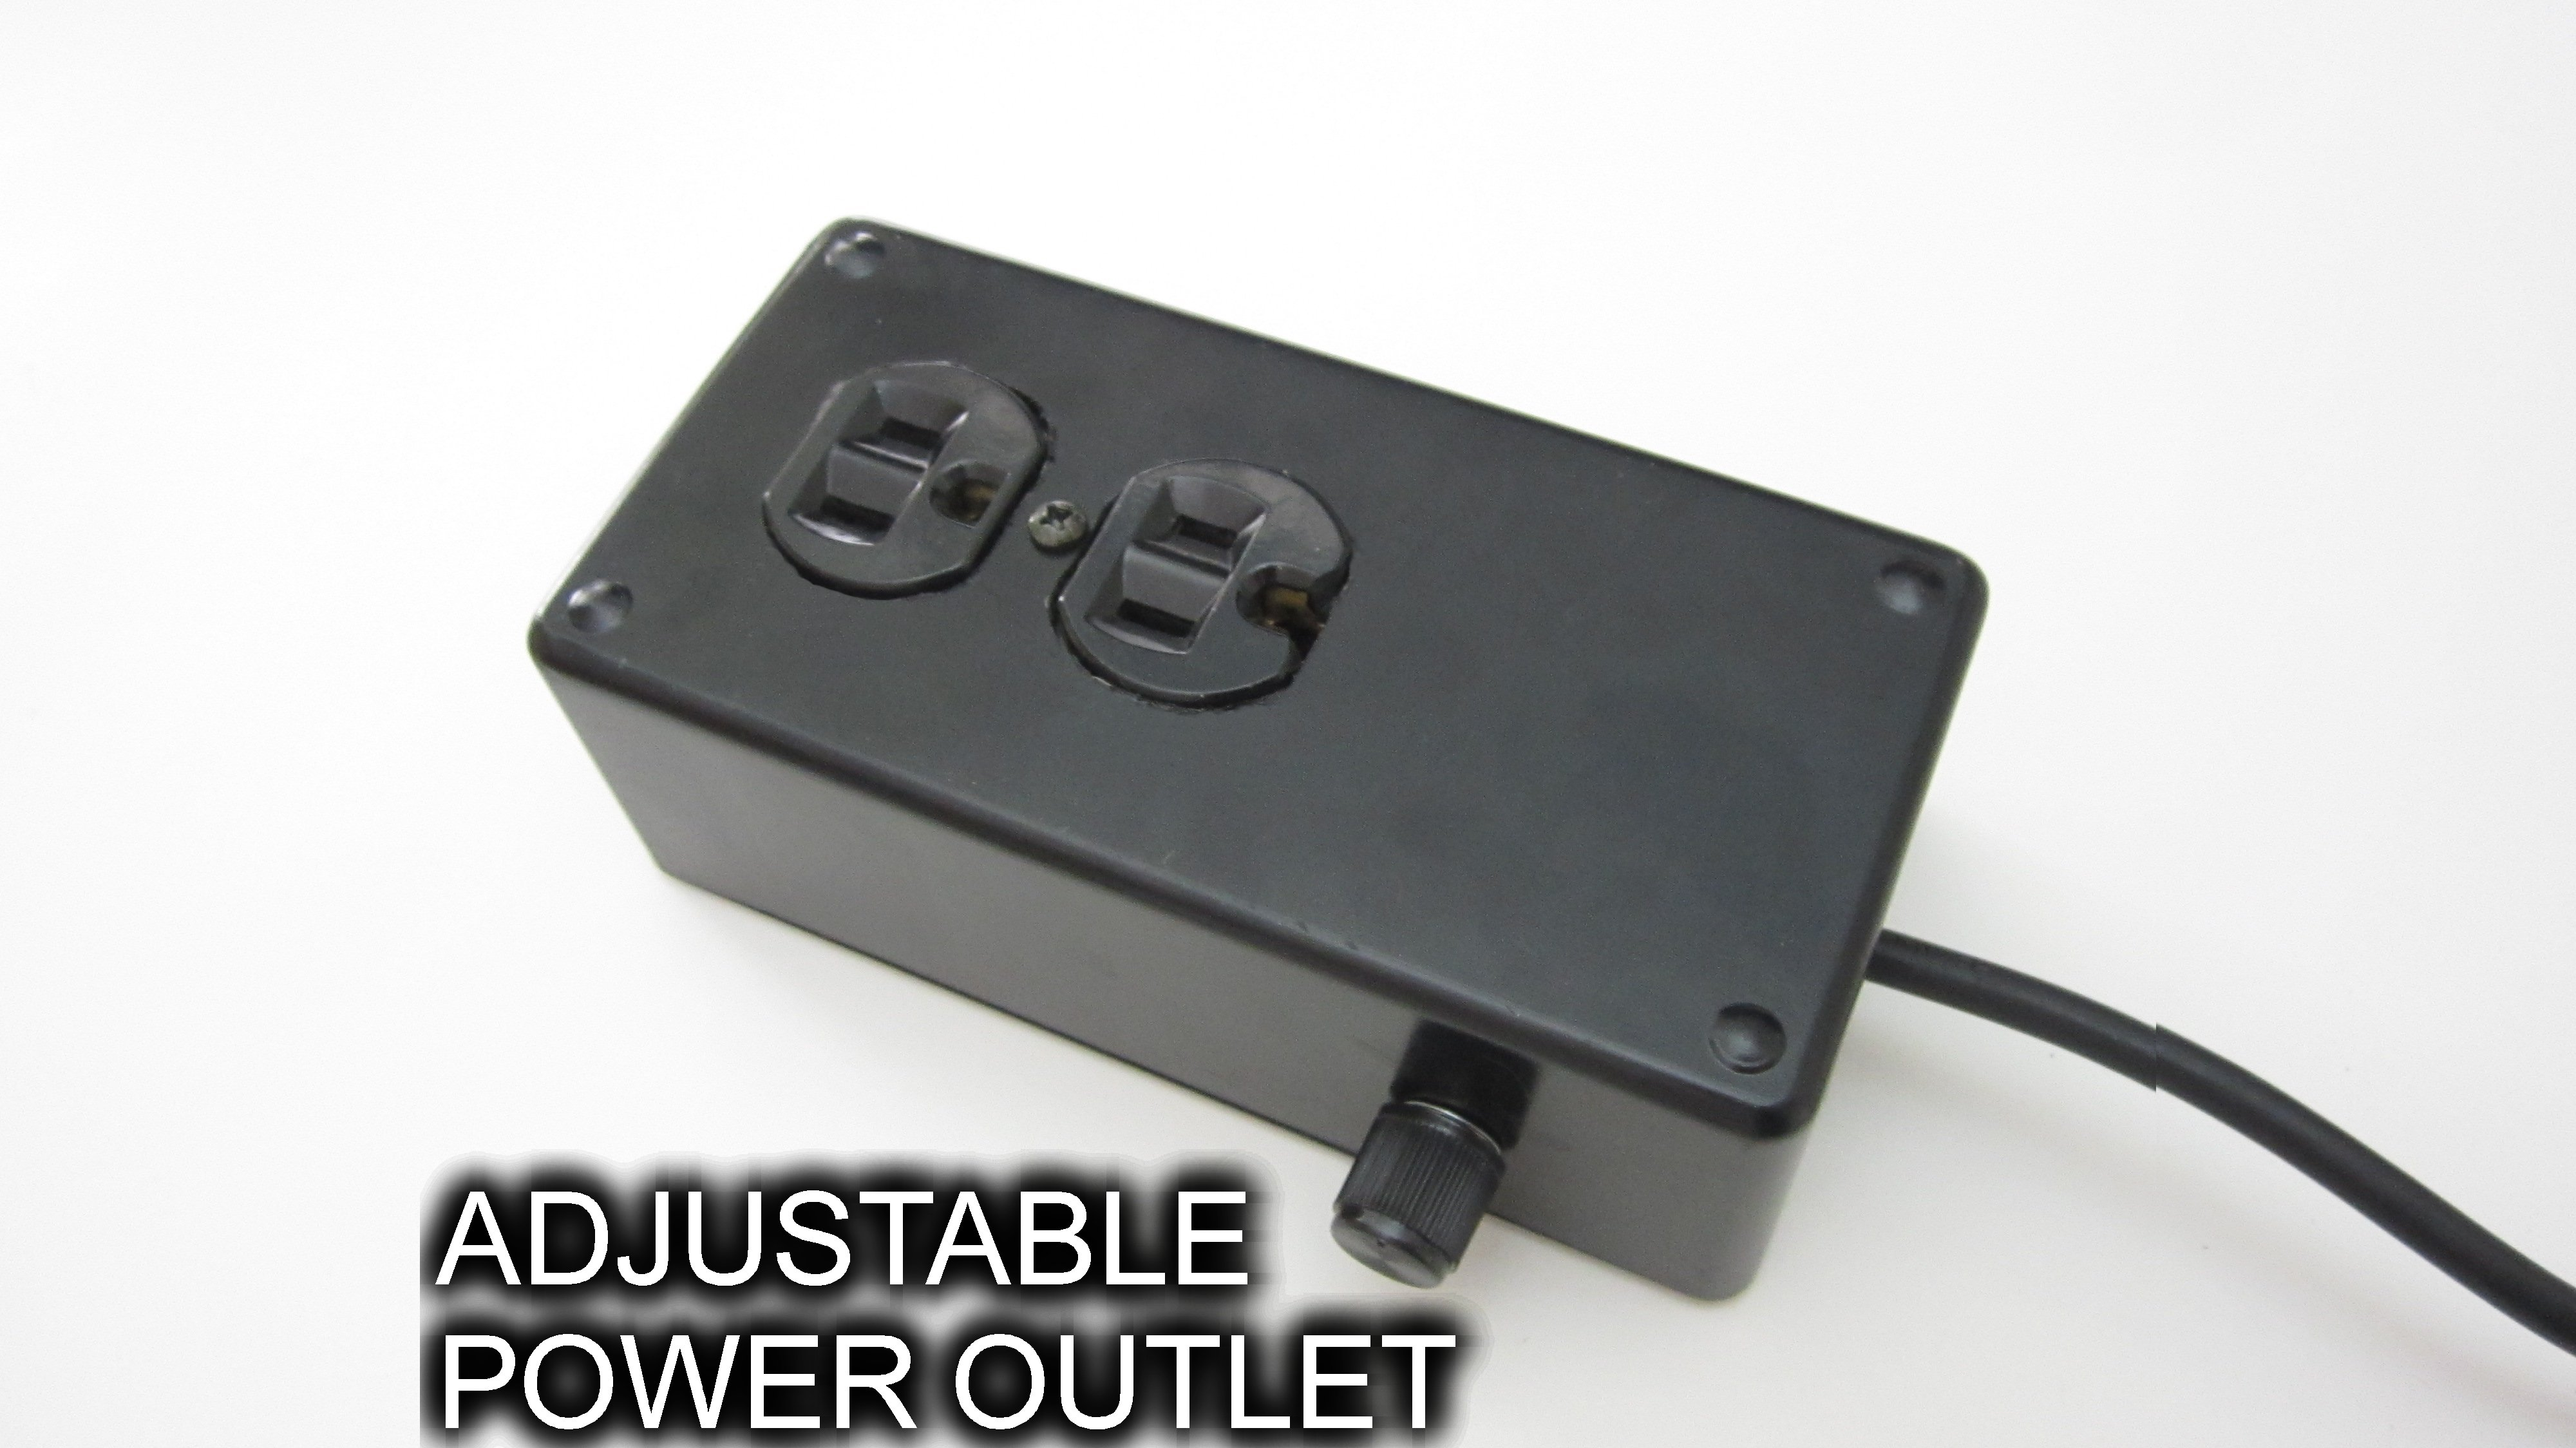 Adjustable Power Outlet